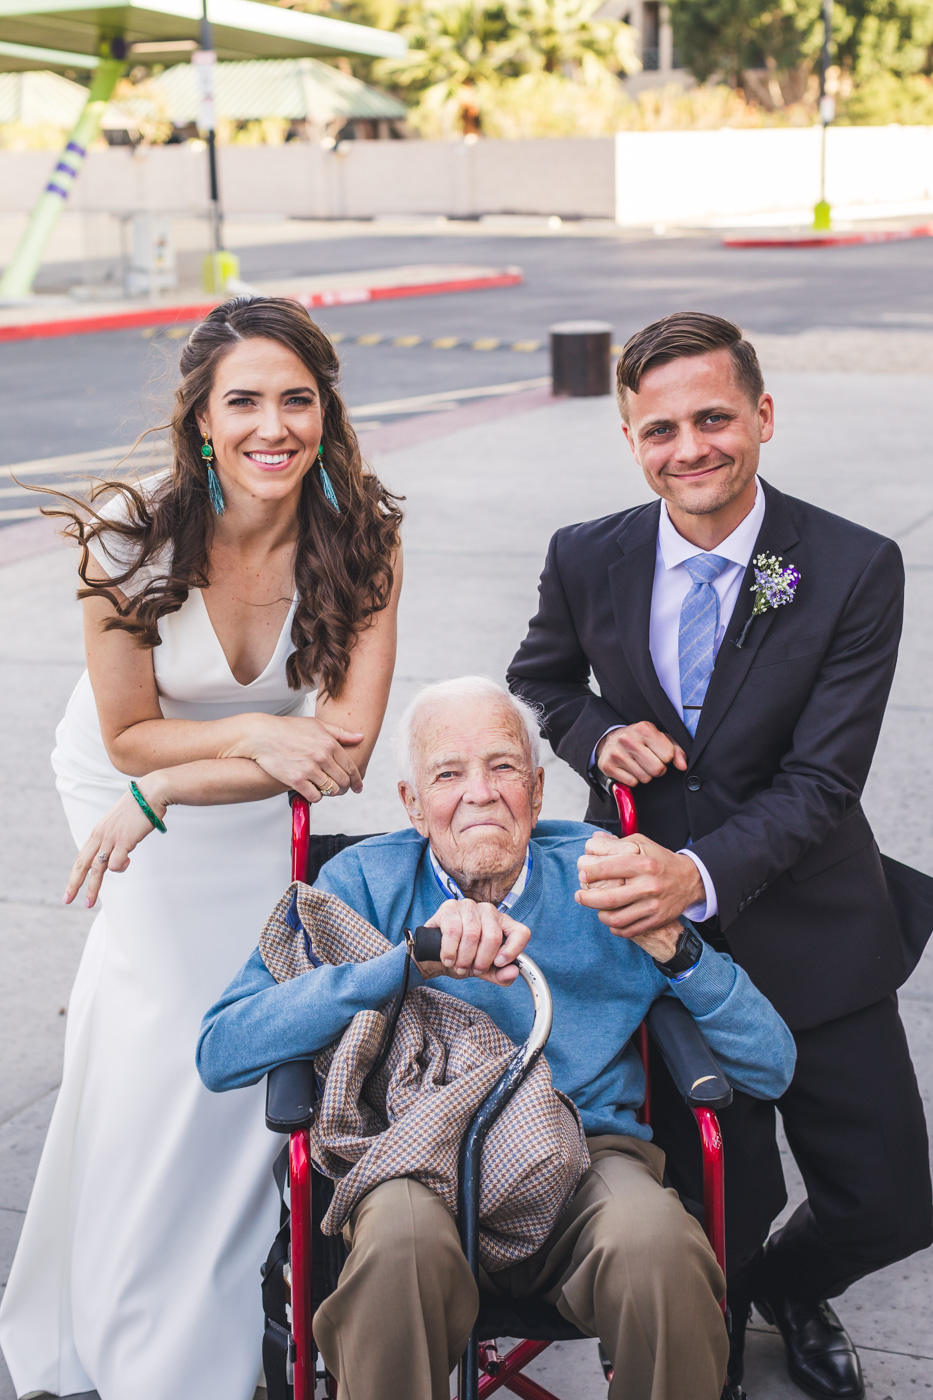 bride-and-groom-with-grandpa